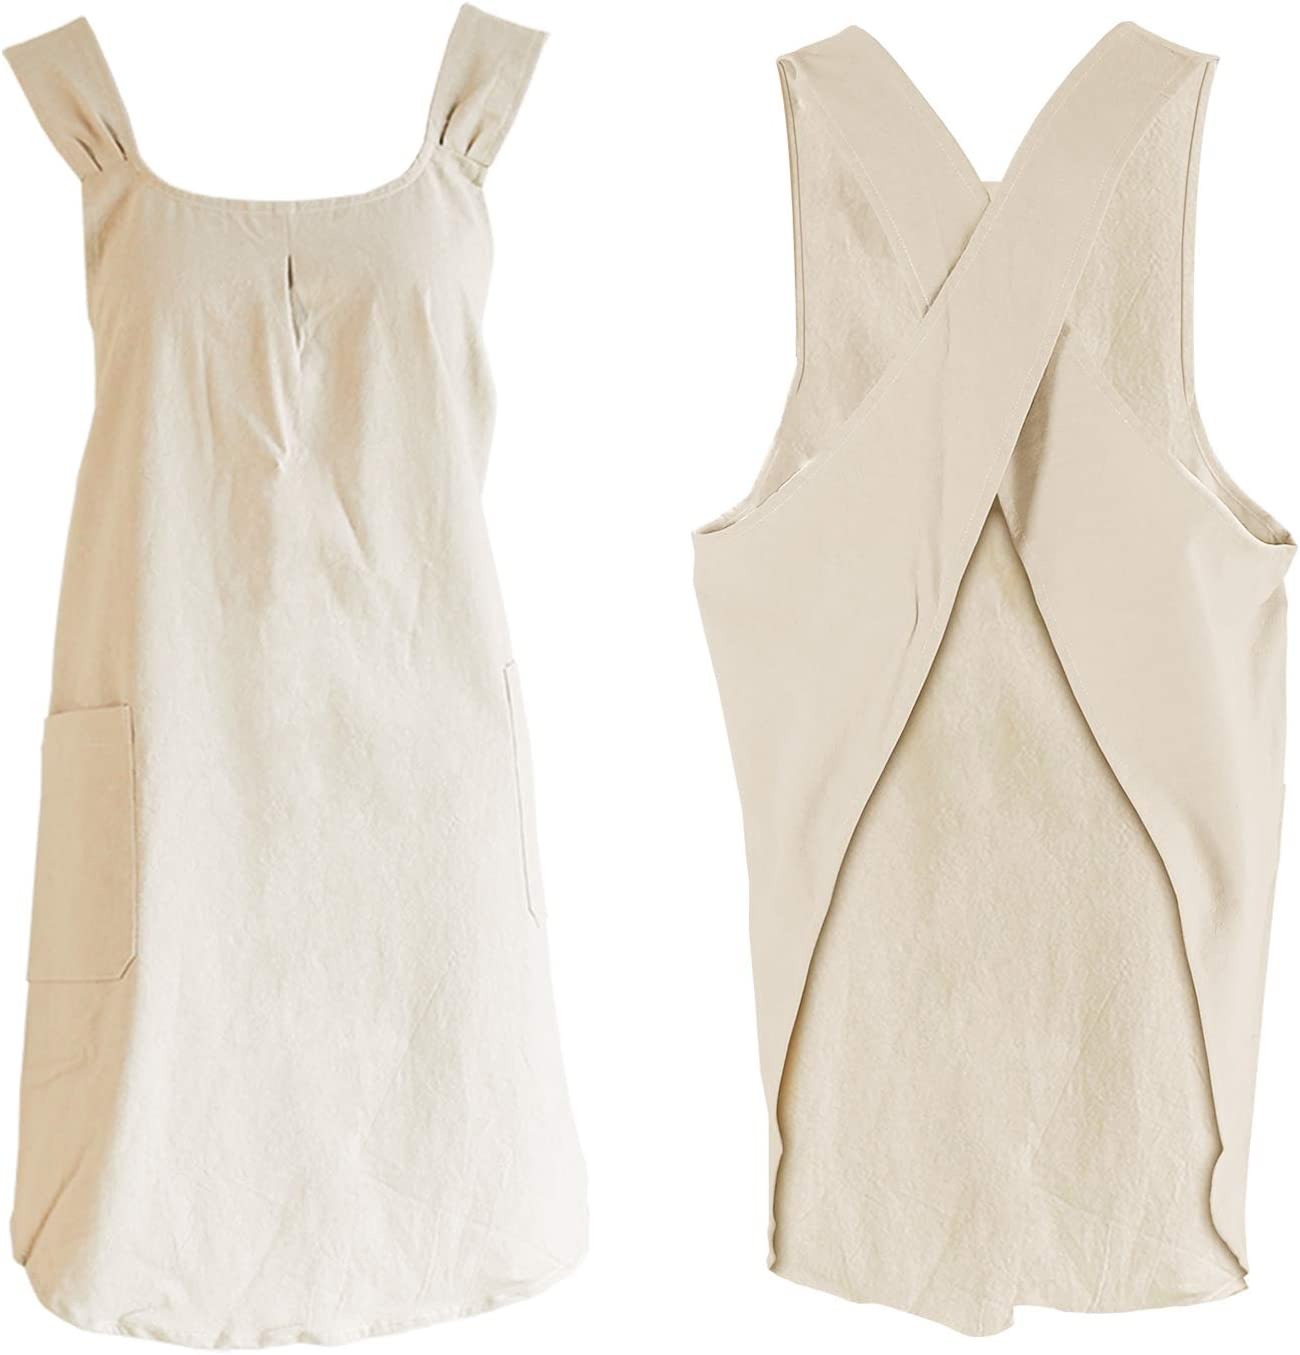 Kitchen Cooking Aprons Cross Back with Two Large Pockets (Beige)